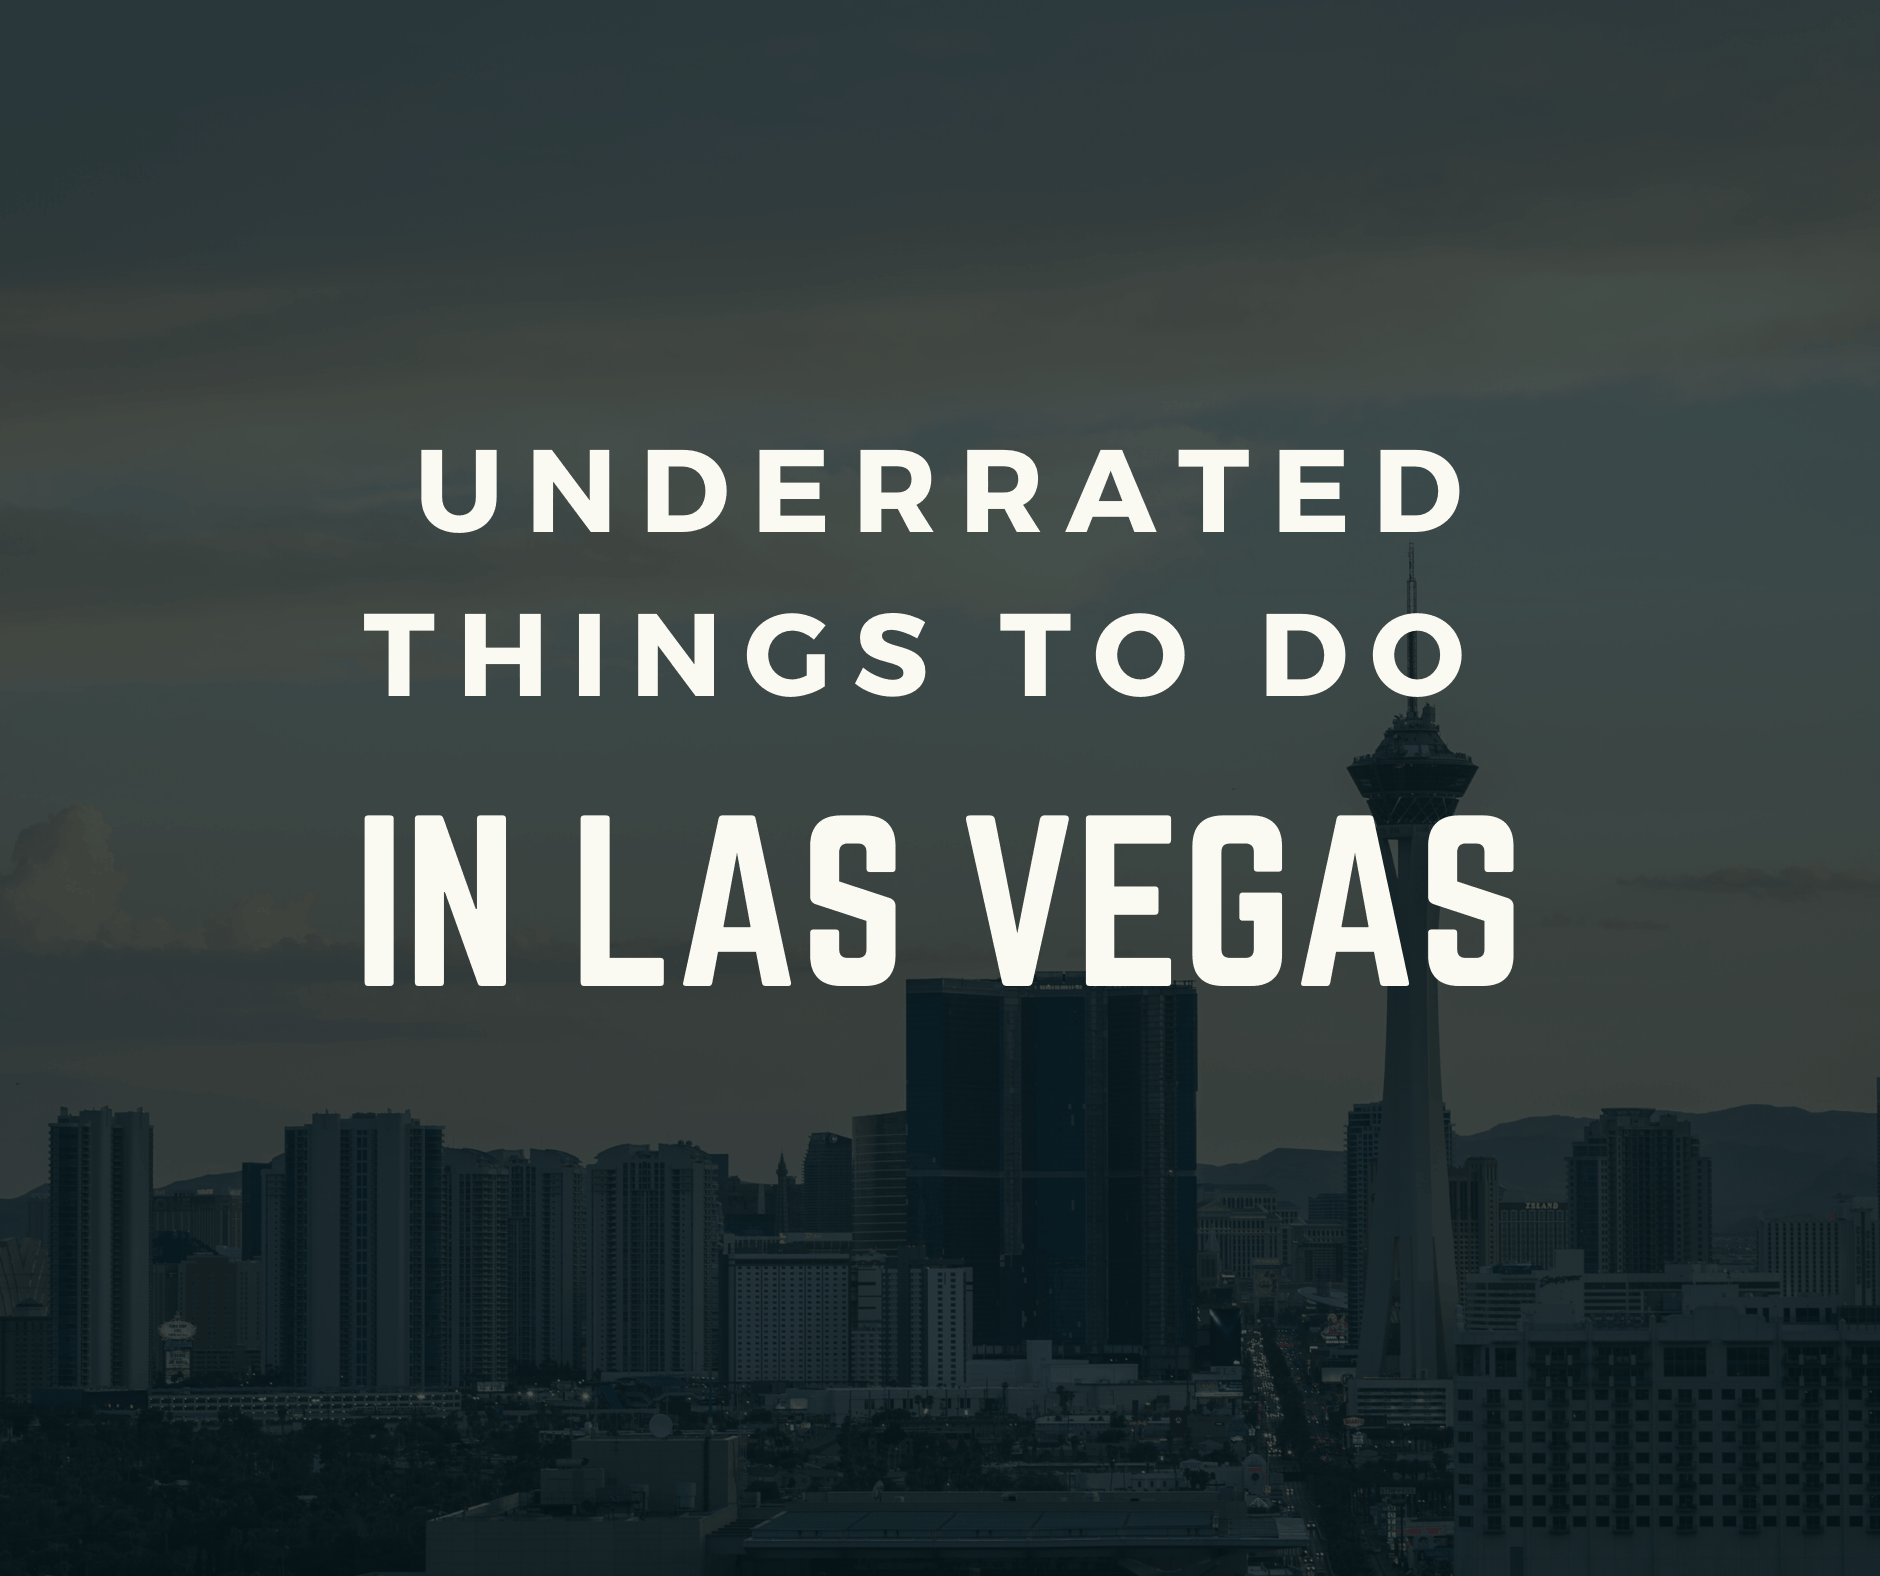 Underrated Things To Do in Vegas